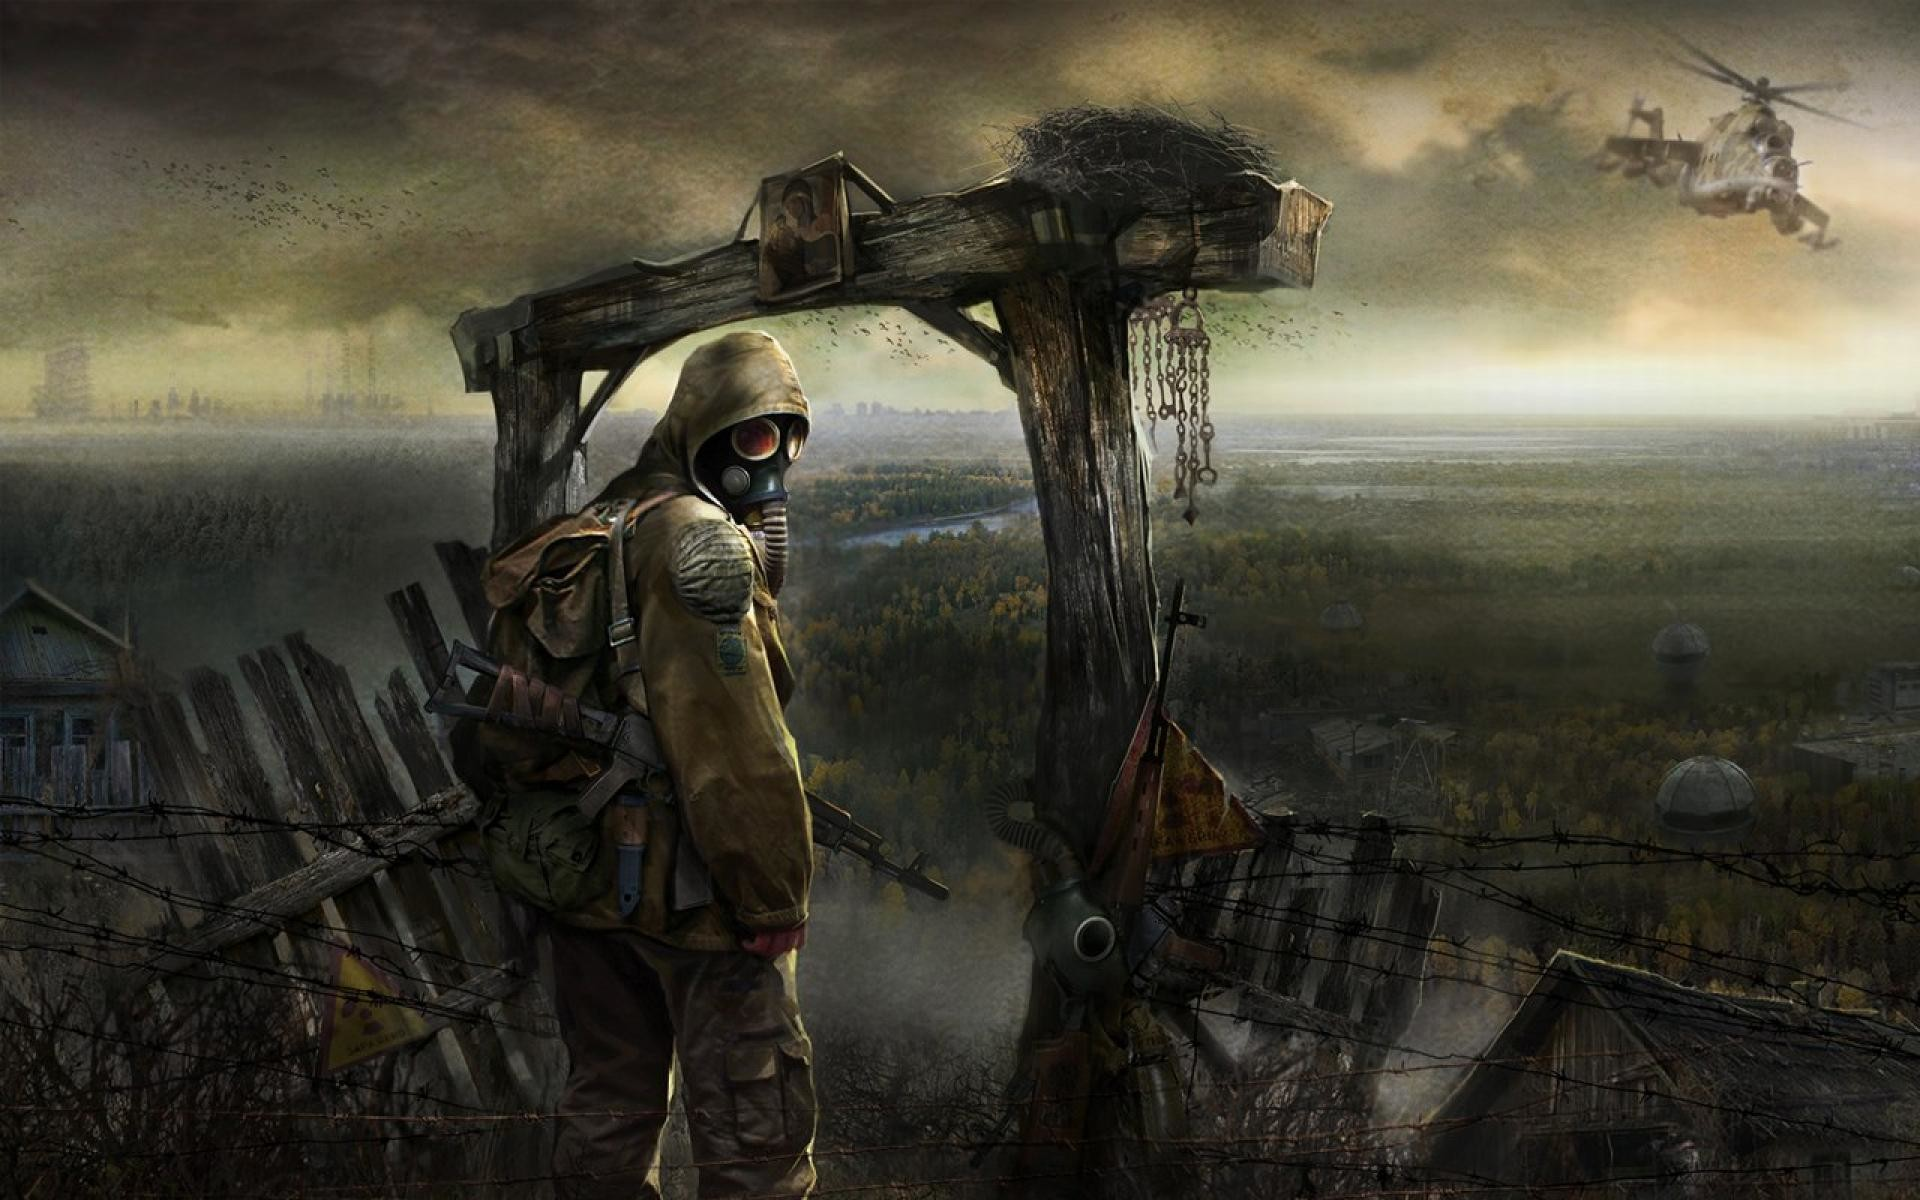 wallpaper.wiki-Download-Free-Apocalyptic-Wallpaper-PIC-WPC0012101